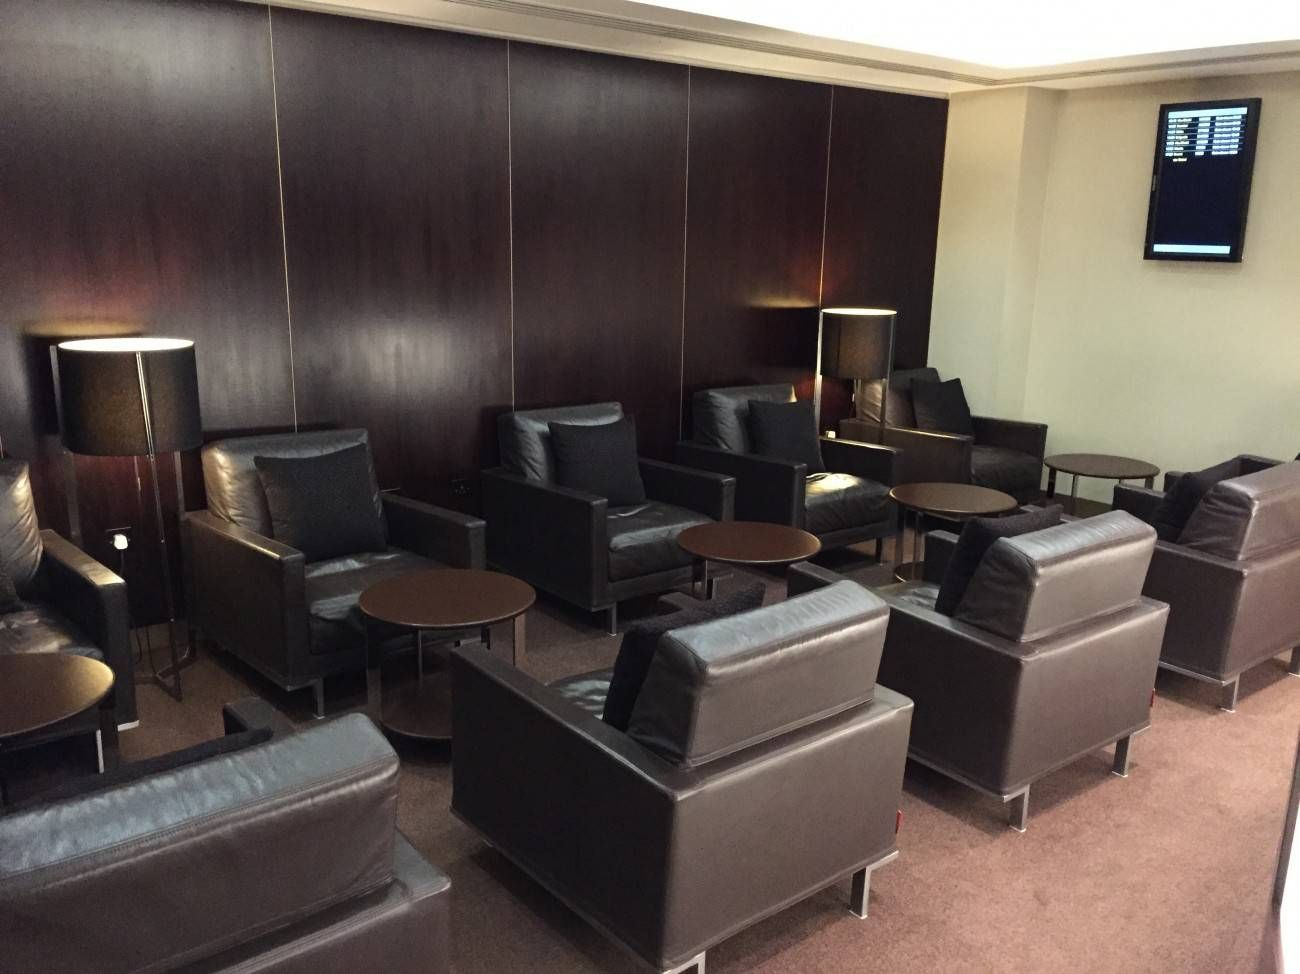 Etihad Lounge London Heathrow - Passageirodeprimeira 15